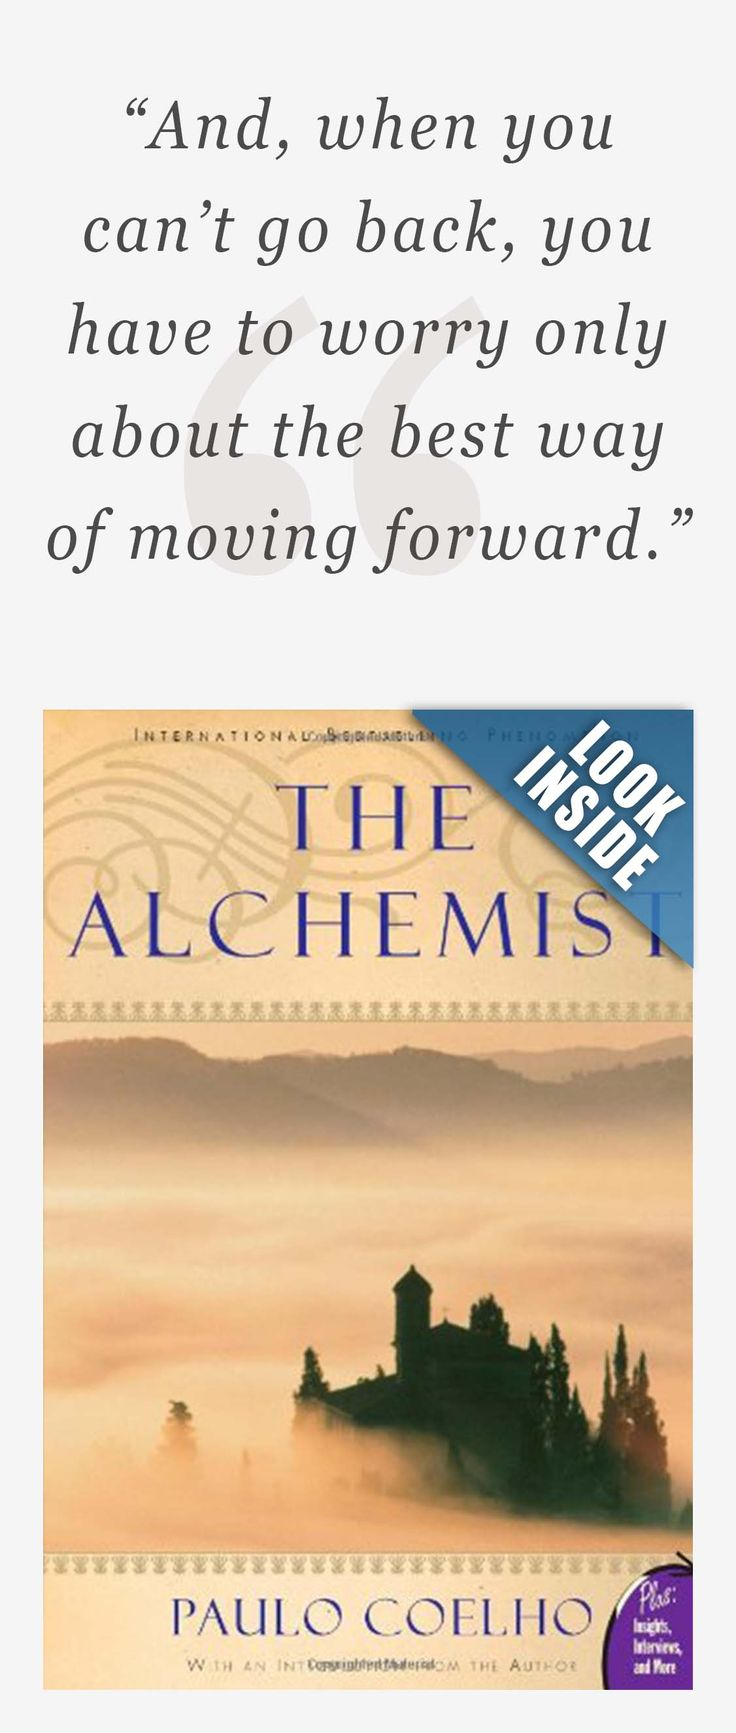 novel alchemist best ideas about the alchemist paulo coelho the  best ideas about the alchemist paulo coelho the 17 best ideas about the alchemist paulo coelho